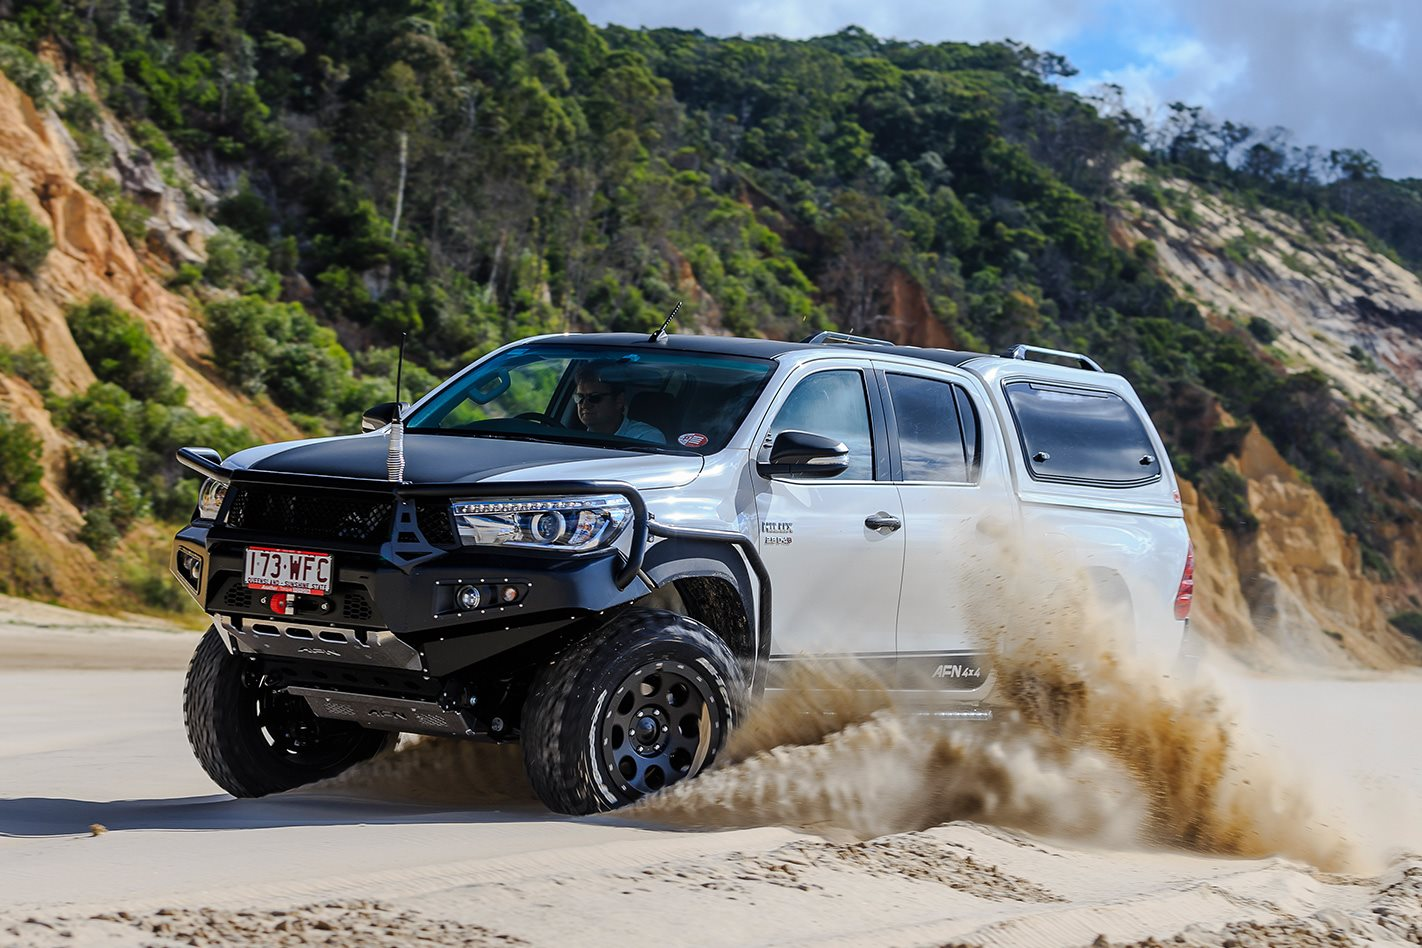 afn toyota hilux custom 4x4oty contender 4x4 australia. Black Bedroom Furniture Sets. Home Design Ideas